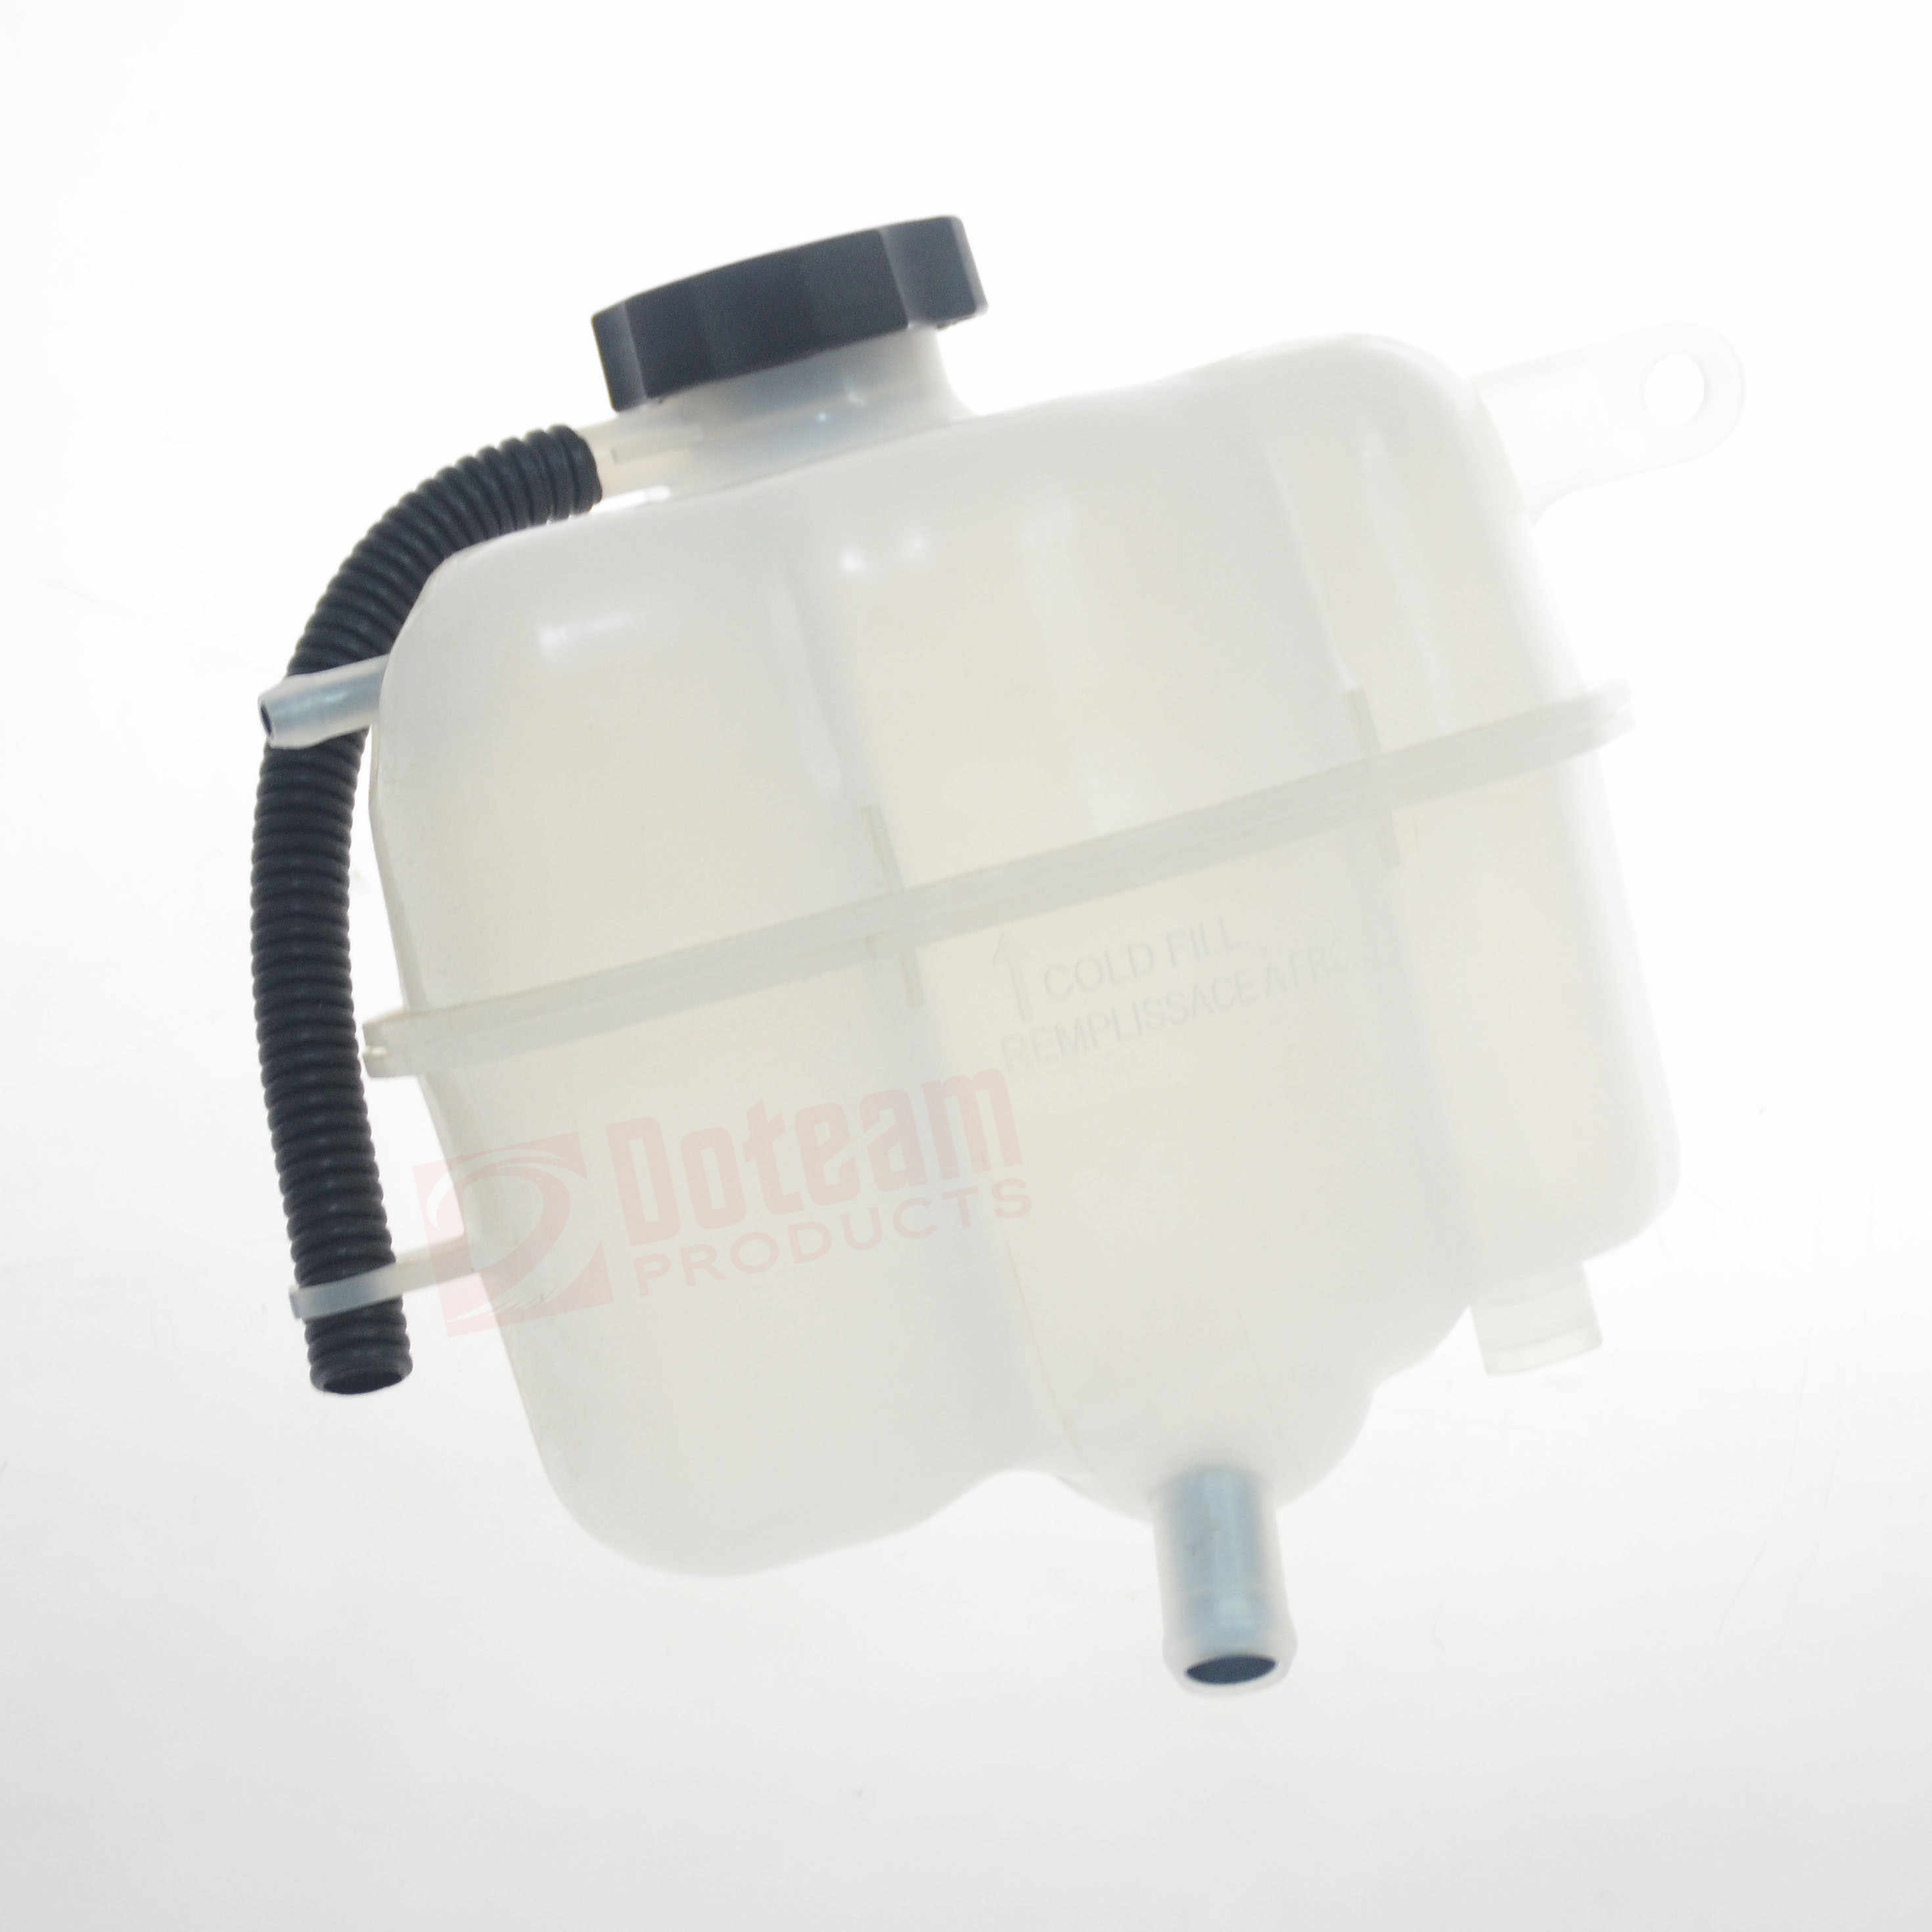 Coolant Reservoir Expansion Tank compatible with Escalade//Tahoe//GMC Yukon 07-14 w//Cap 140KPA   20PSI Plastic